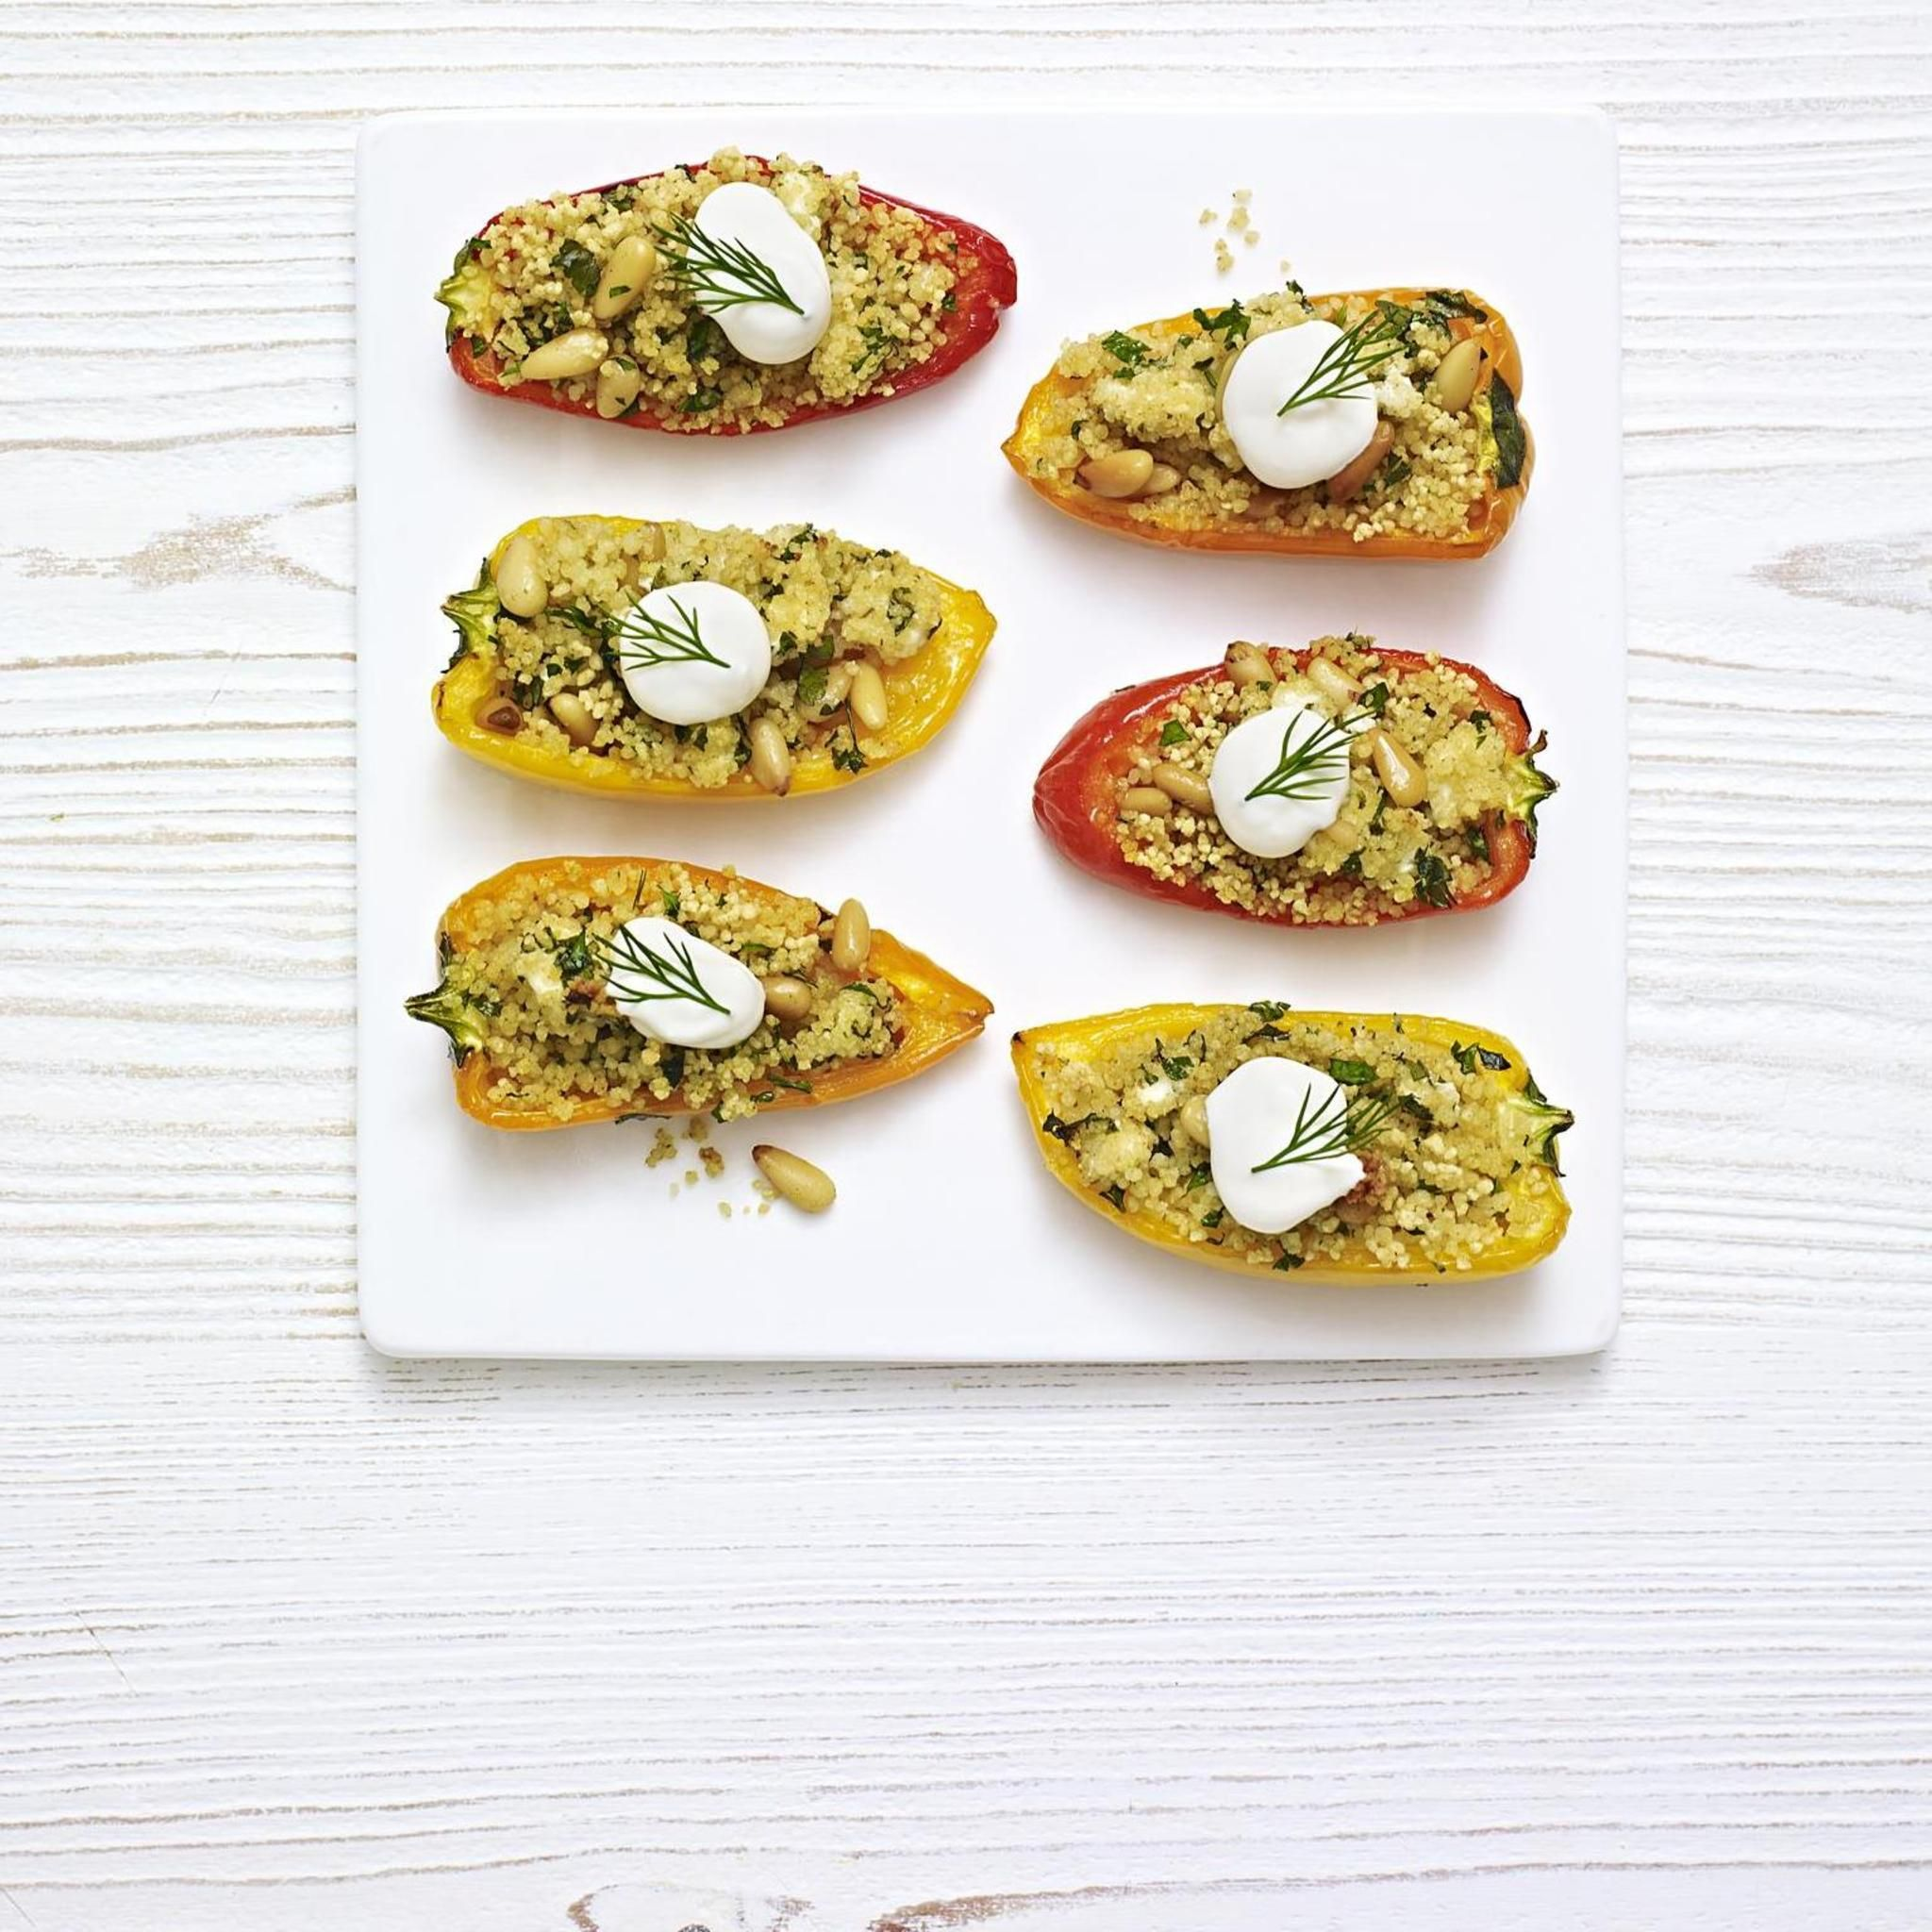 Herby couscous stuffed baby peppers a delicious recipe from the new herby couscous stuffed baby peppers a delicious recipe from the new ms app forumfinder Image collections